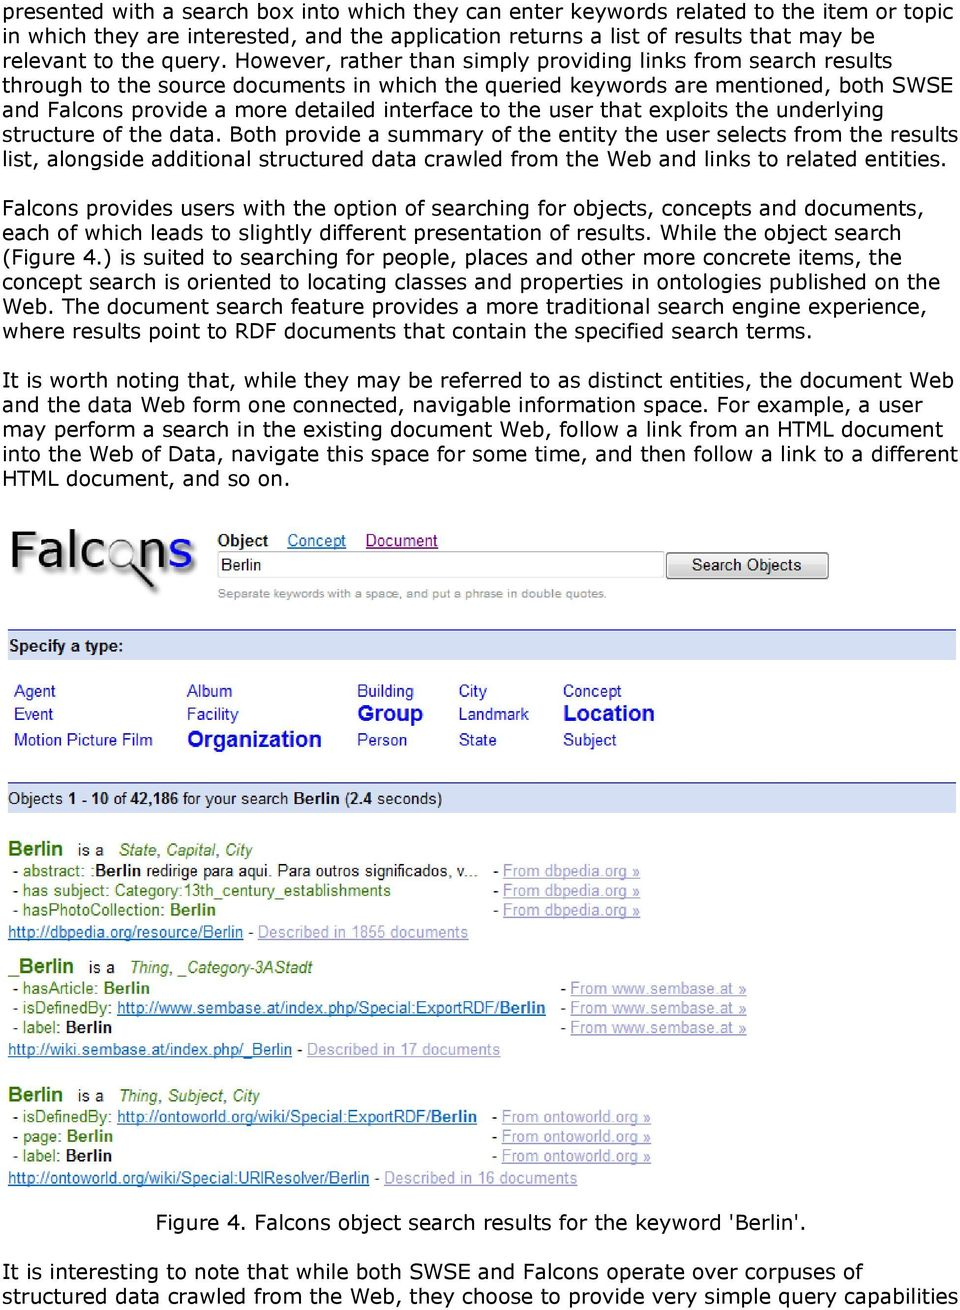 However, rather than simply providing links from search results through to the source documents in which the queried keywords are mentioned, both SWSE and Falcons provide a more detailed interface to